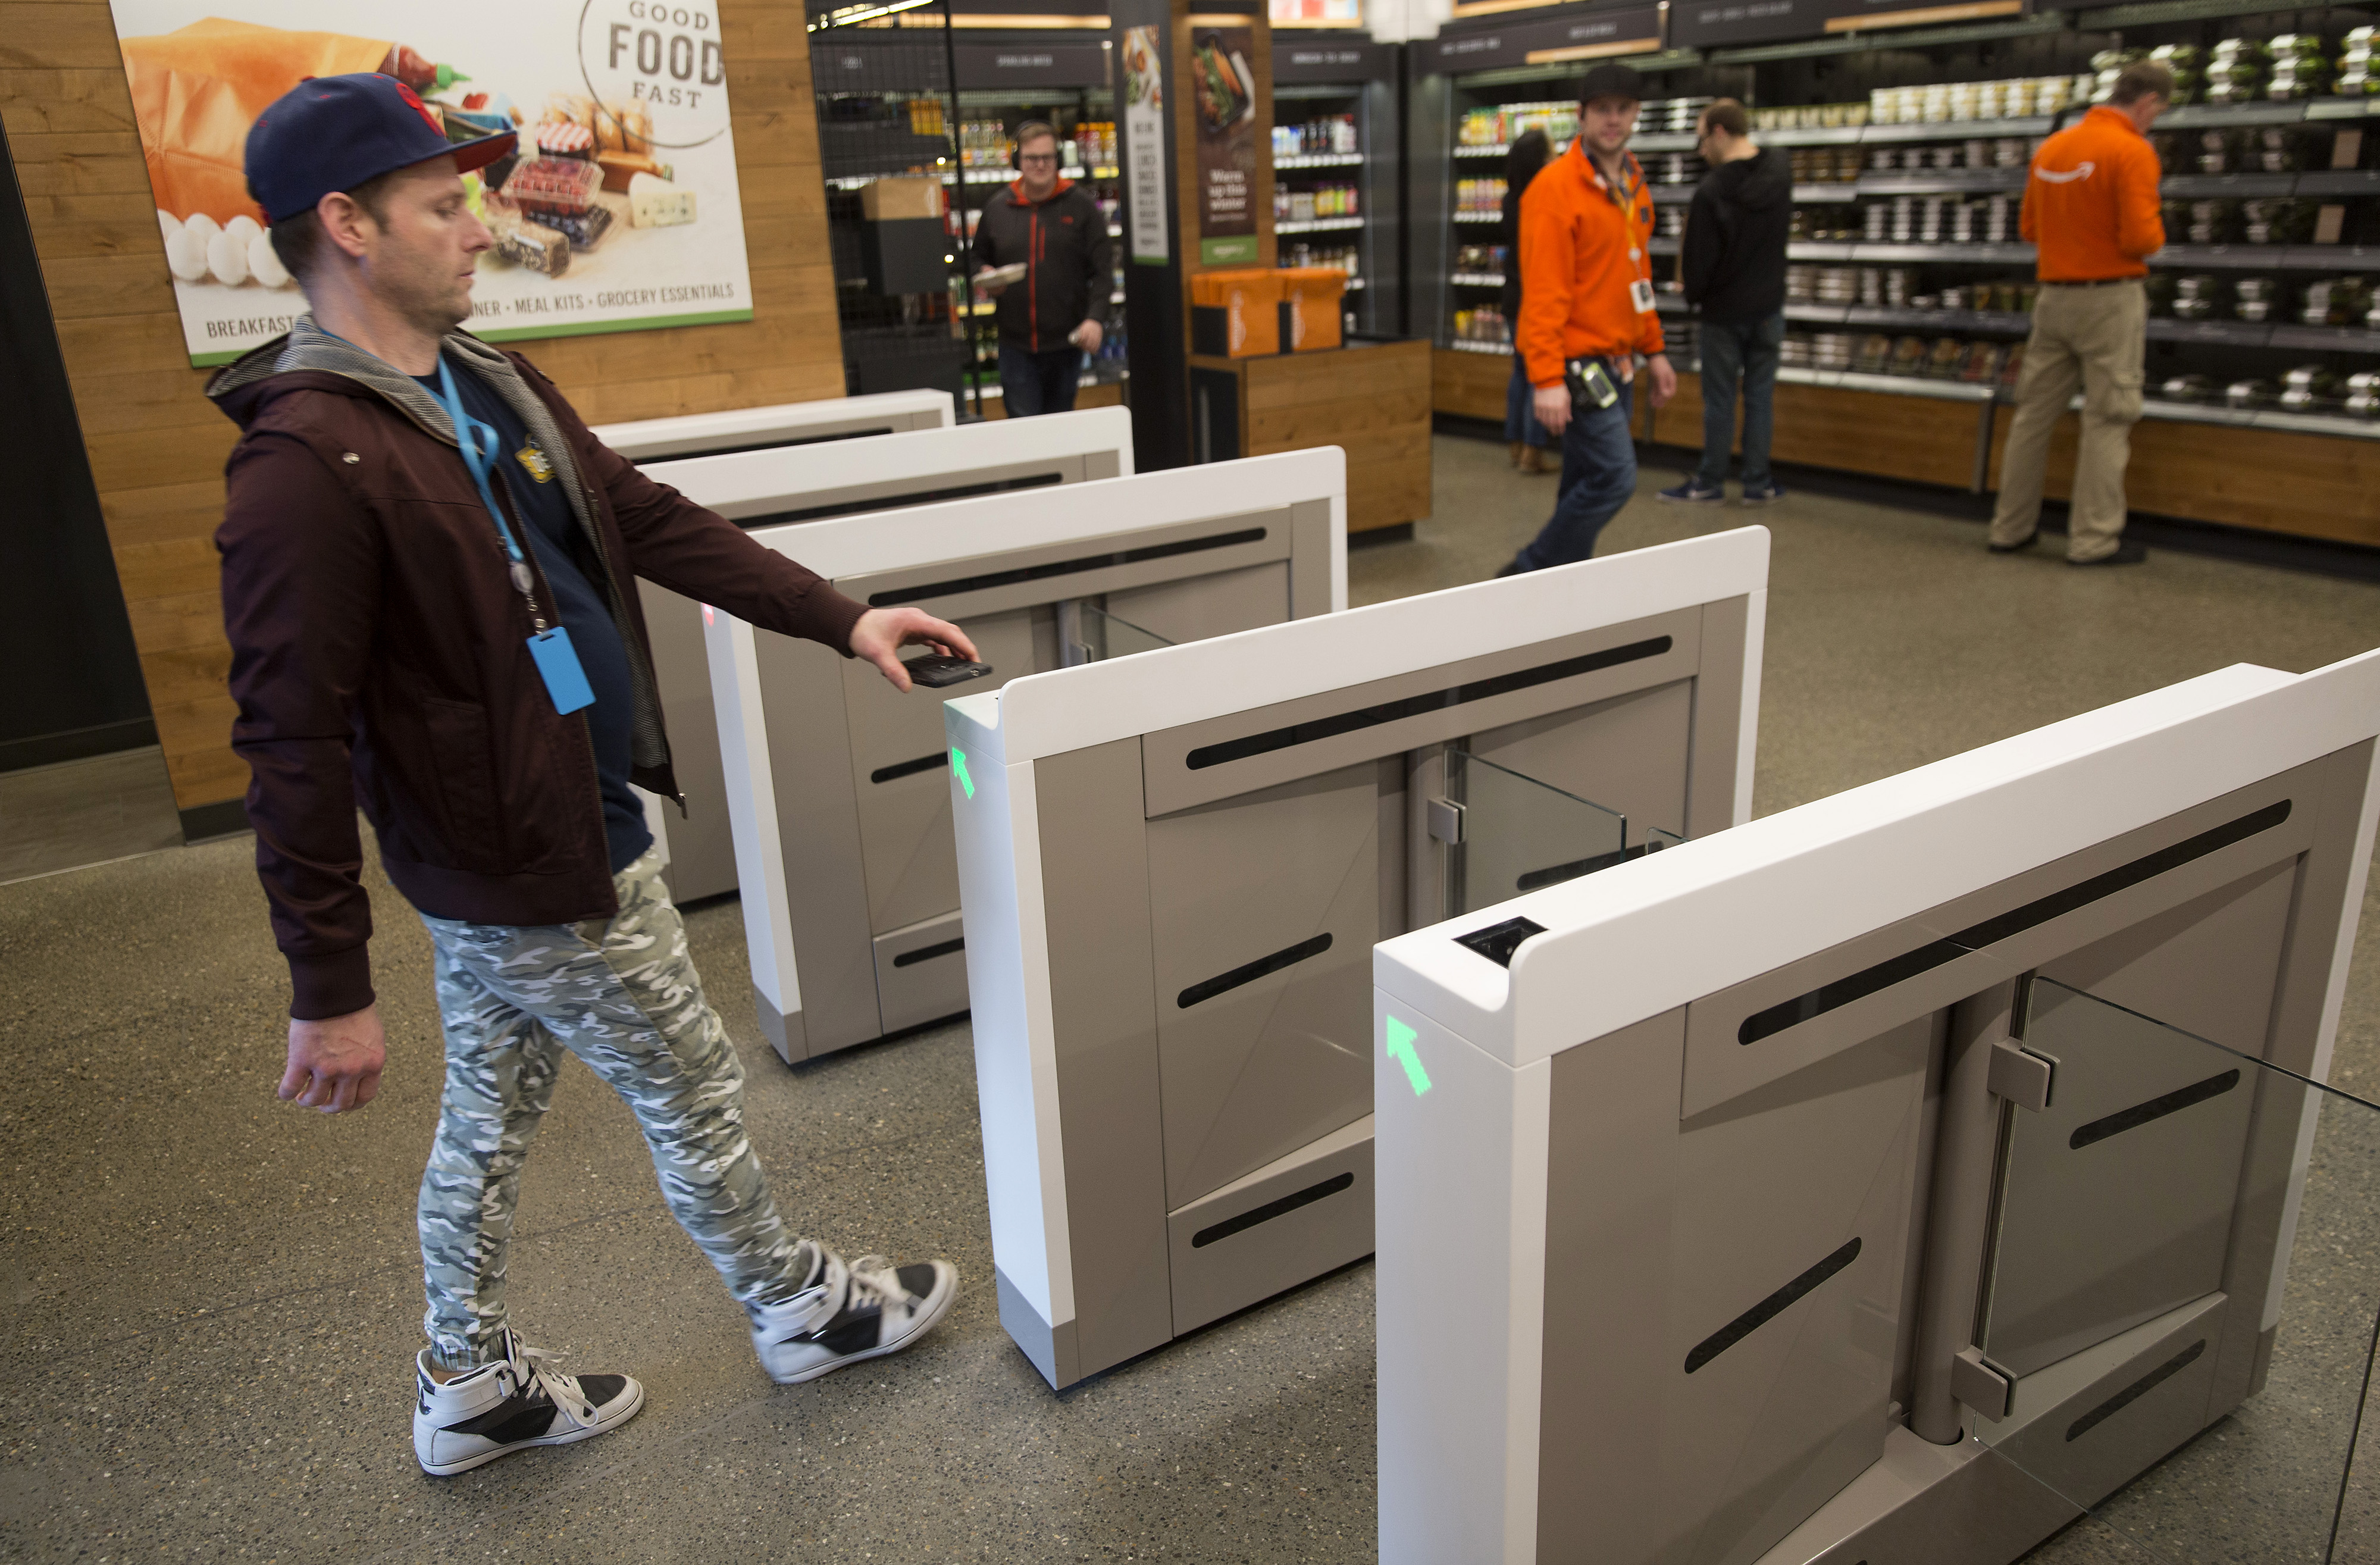 See Inside Amazon's Crazy New Store That Has No Cashiers